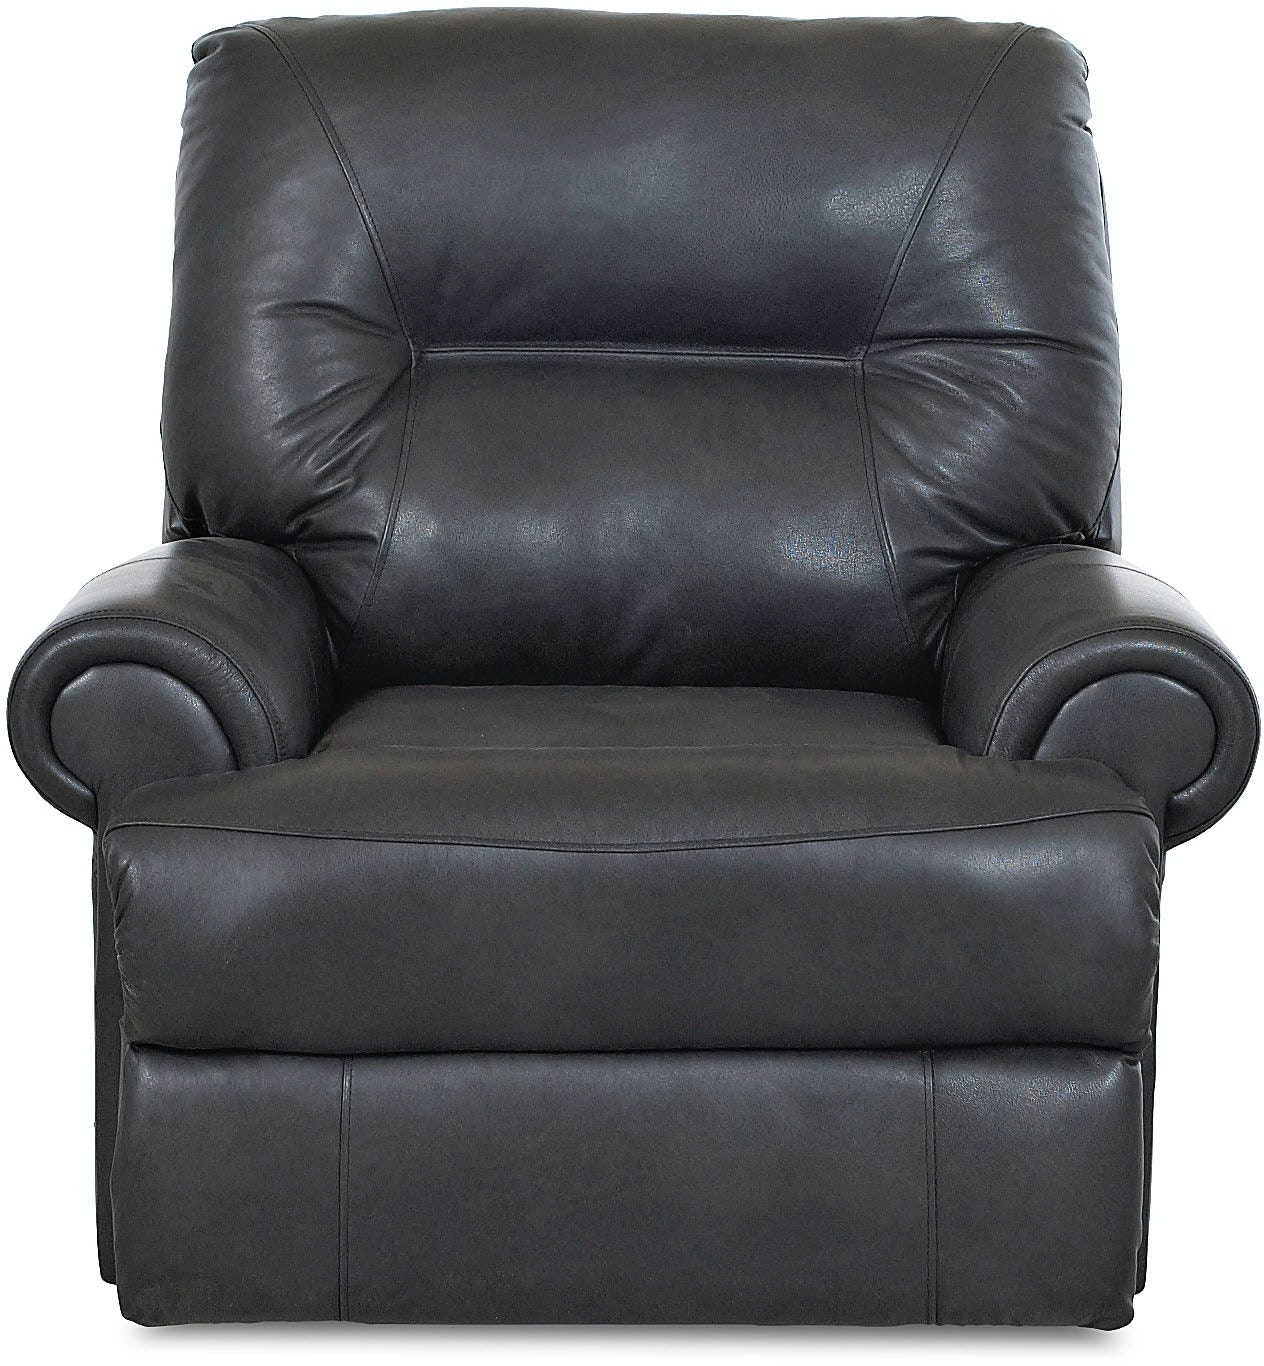 25543 Pwrcklaussner Power Recliner Karl S